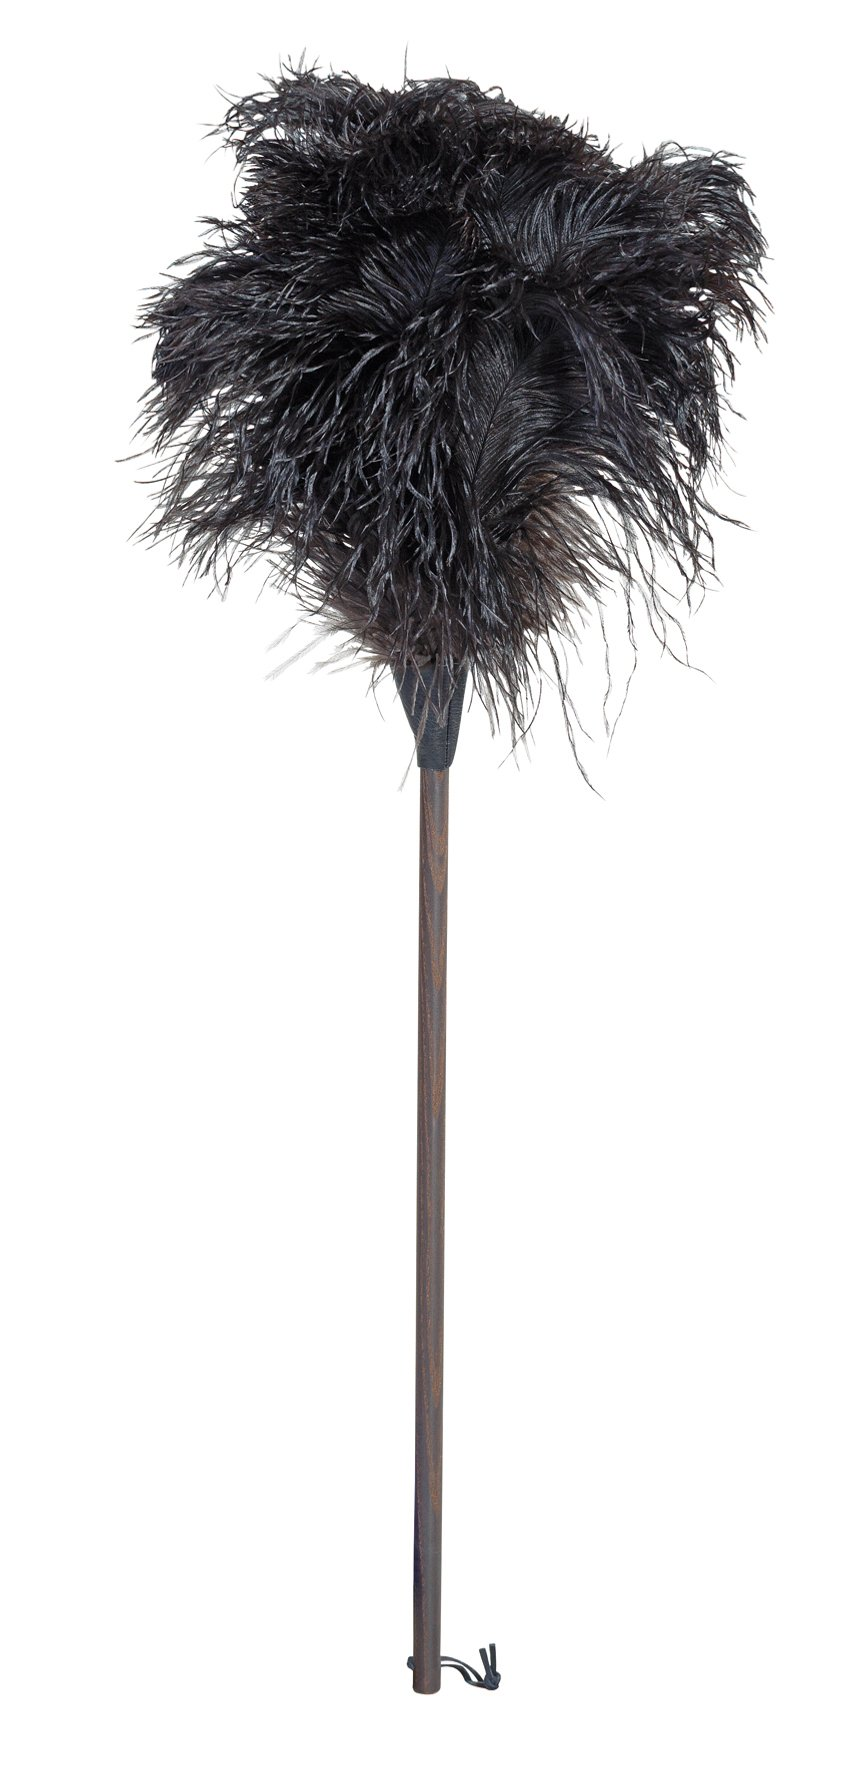 REDECKER Ostrich Feather Duster with Oiled Thermowood Handle, 31-1/2-Inches, Black by REDECKER (Image #1)